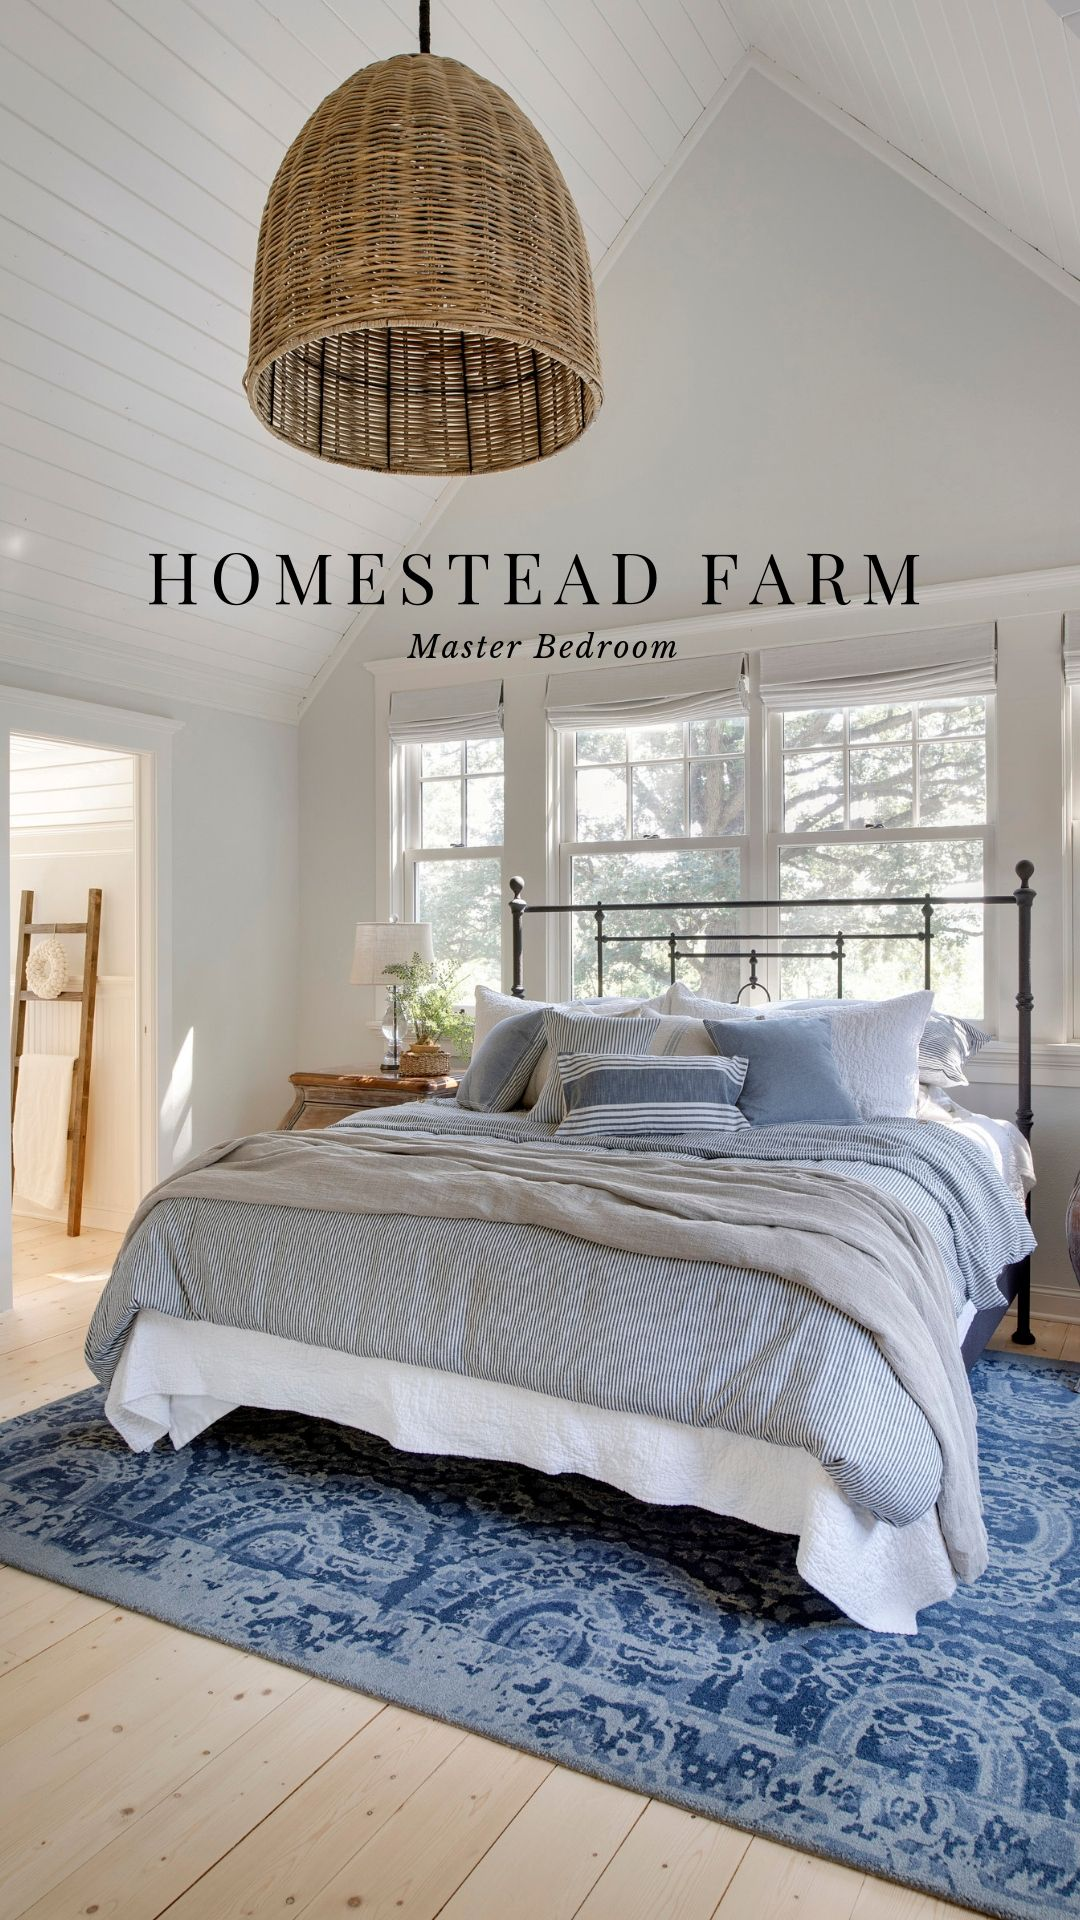 Orono Home Renovation In 2019 Barn Bedrooms Pottery